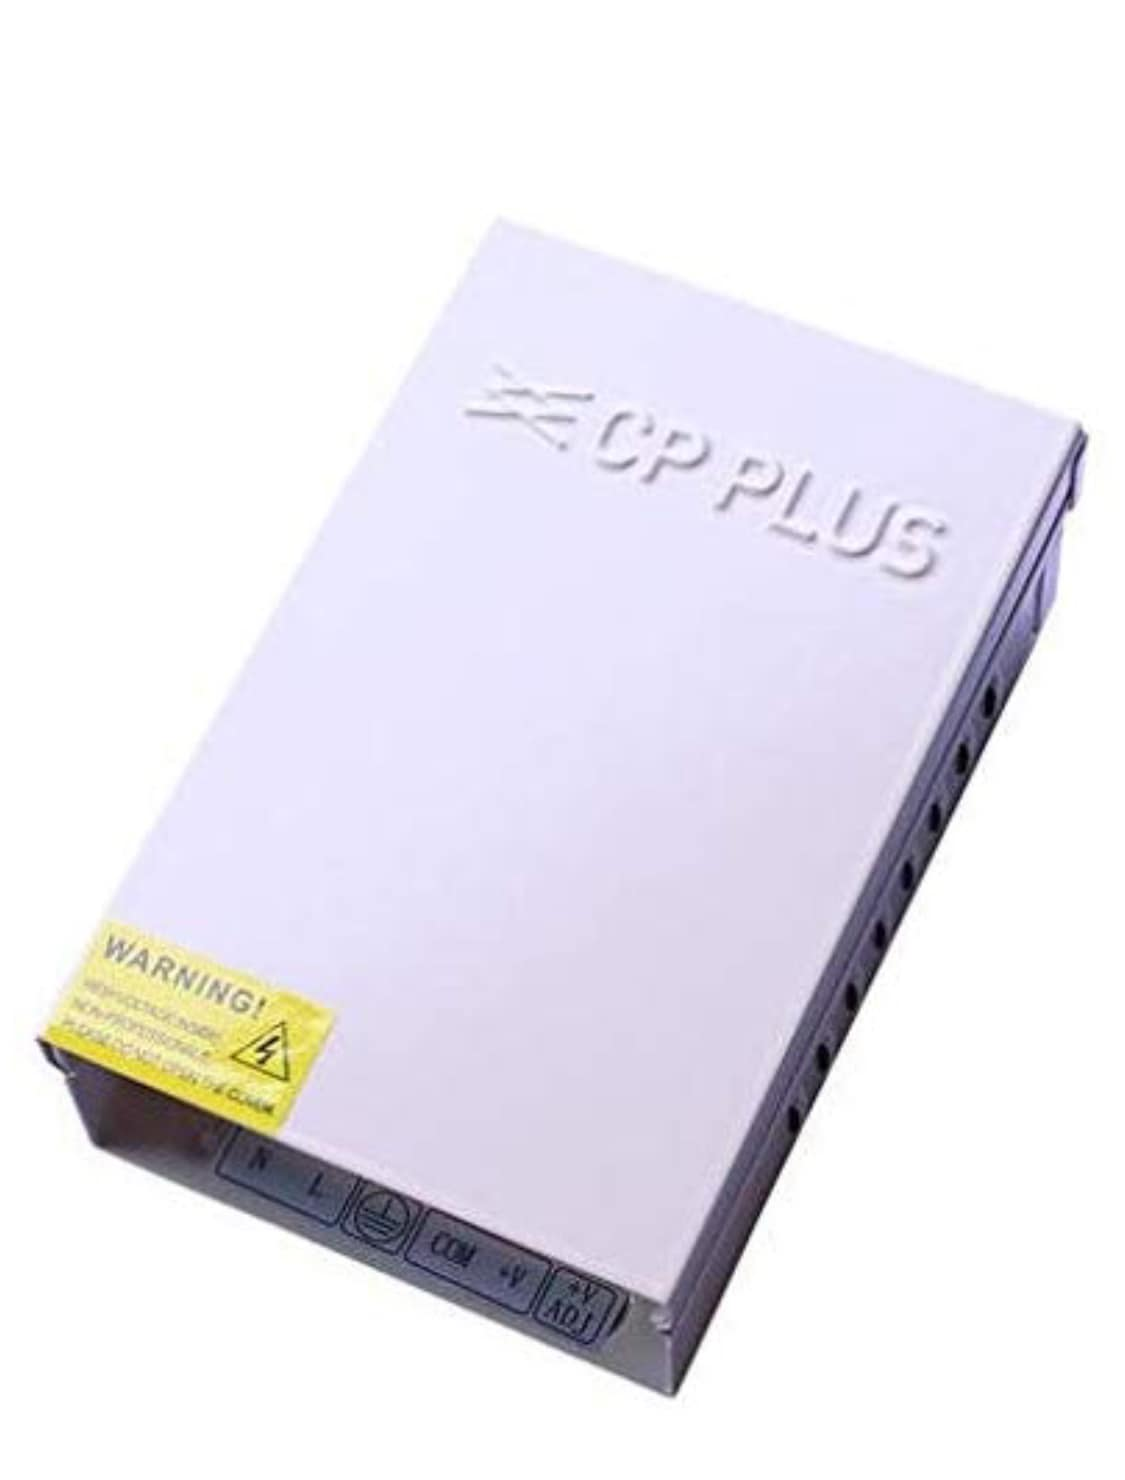 CP PLUS POWER SUPPLY (CP-DPS-MD200-12D)